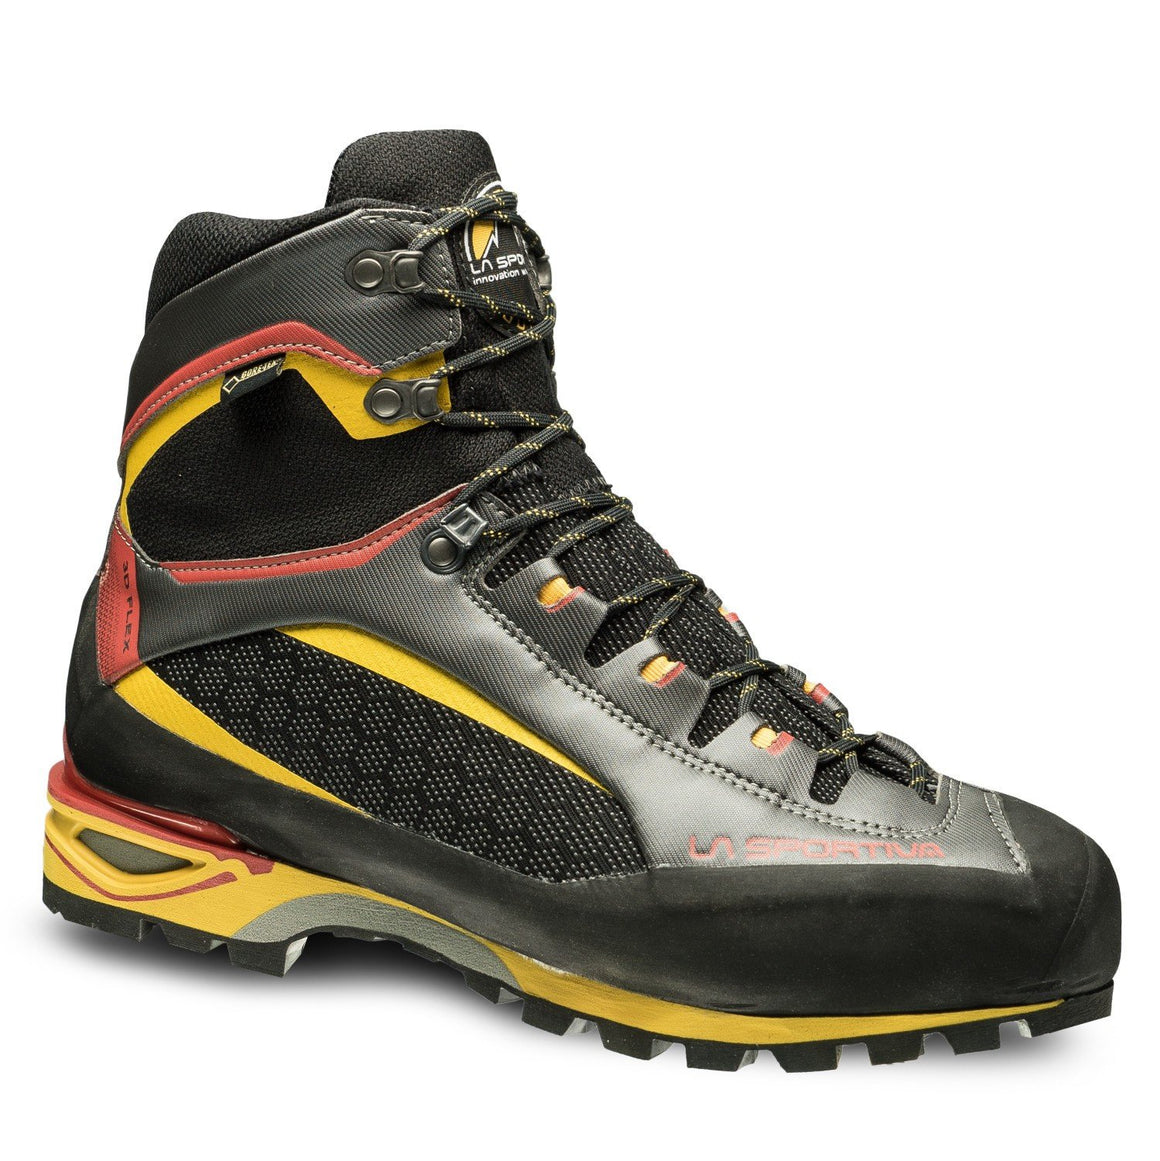 La Sportiva Trango Tower GTX Mountaineering Boot, black, grey, red and yellow